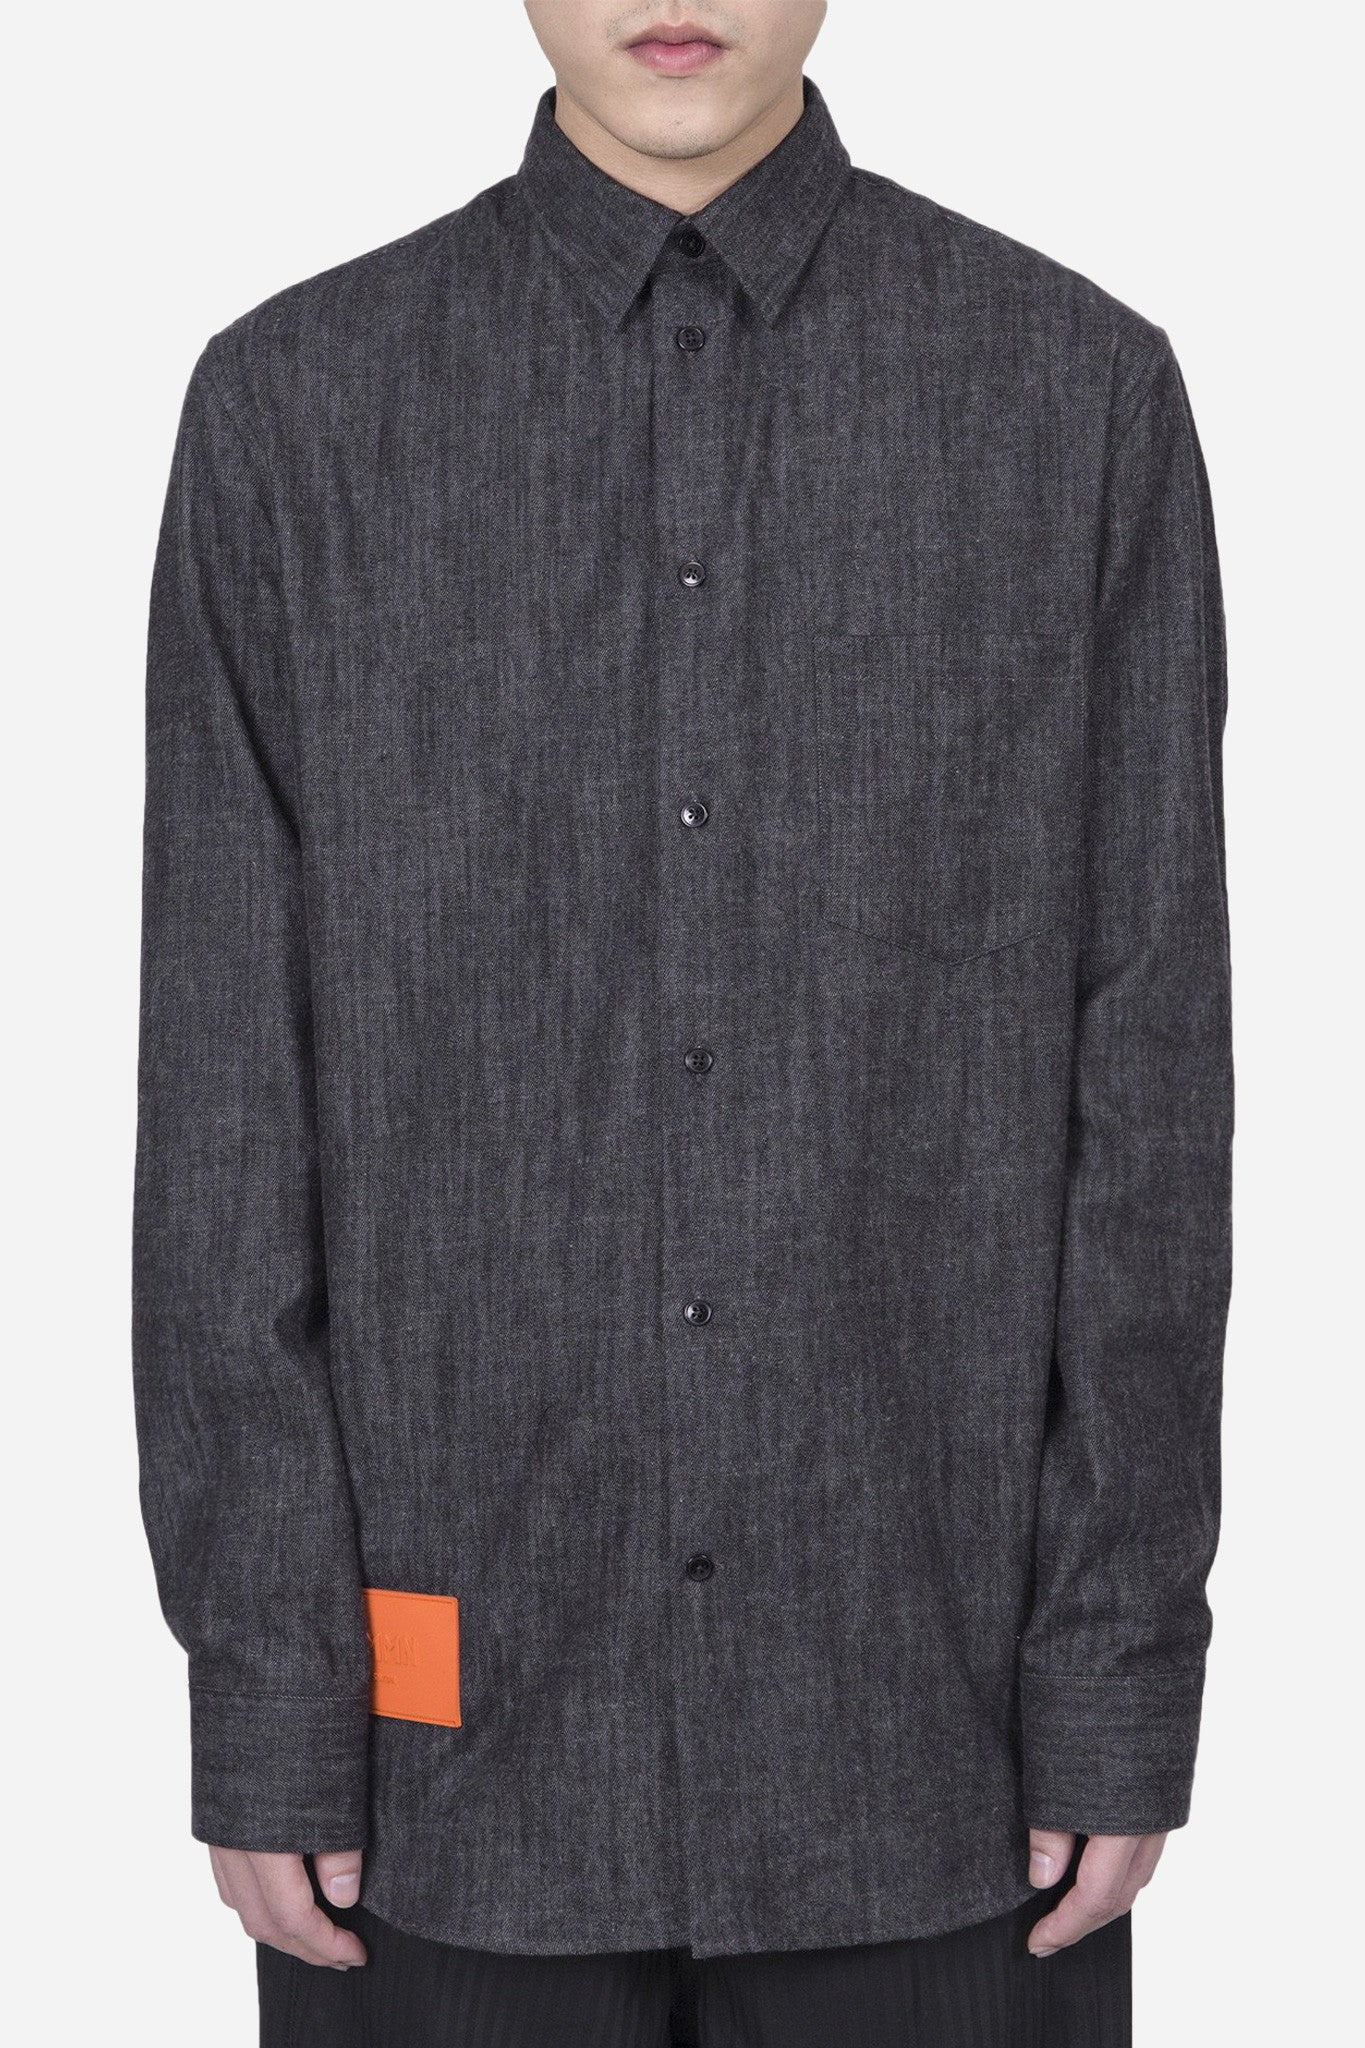 Felix Denim Shirt Black/Orange